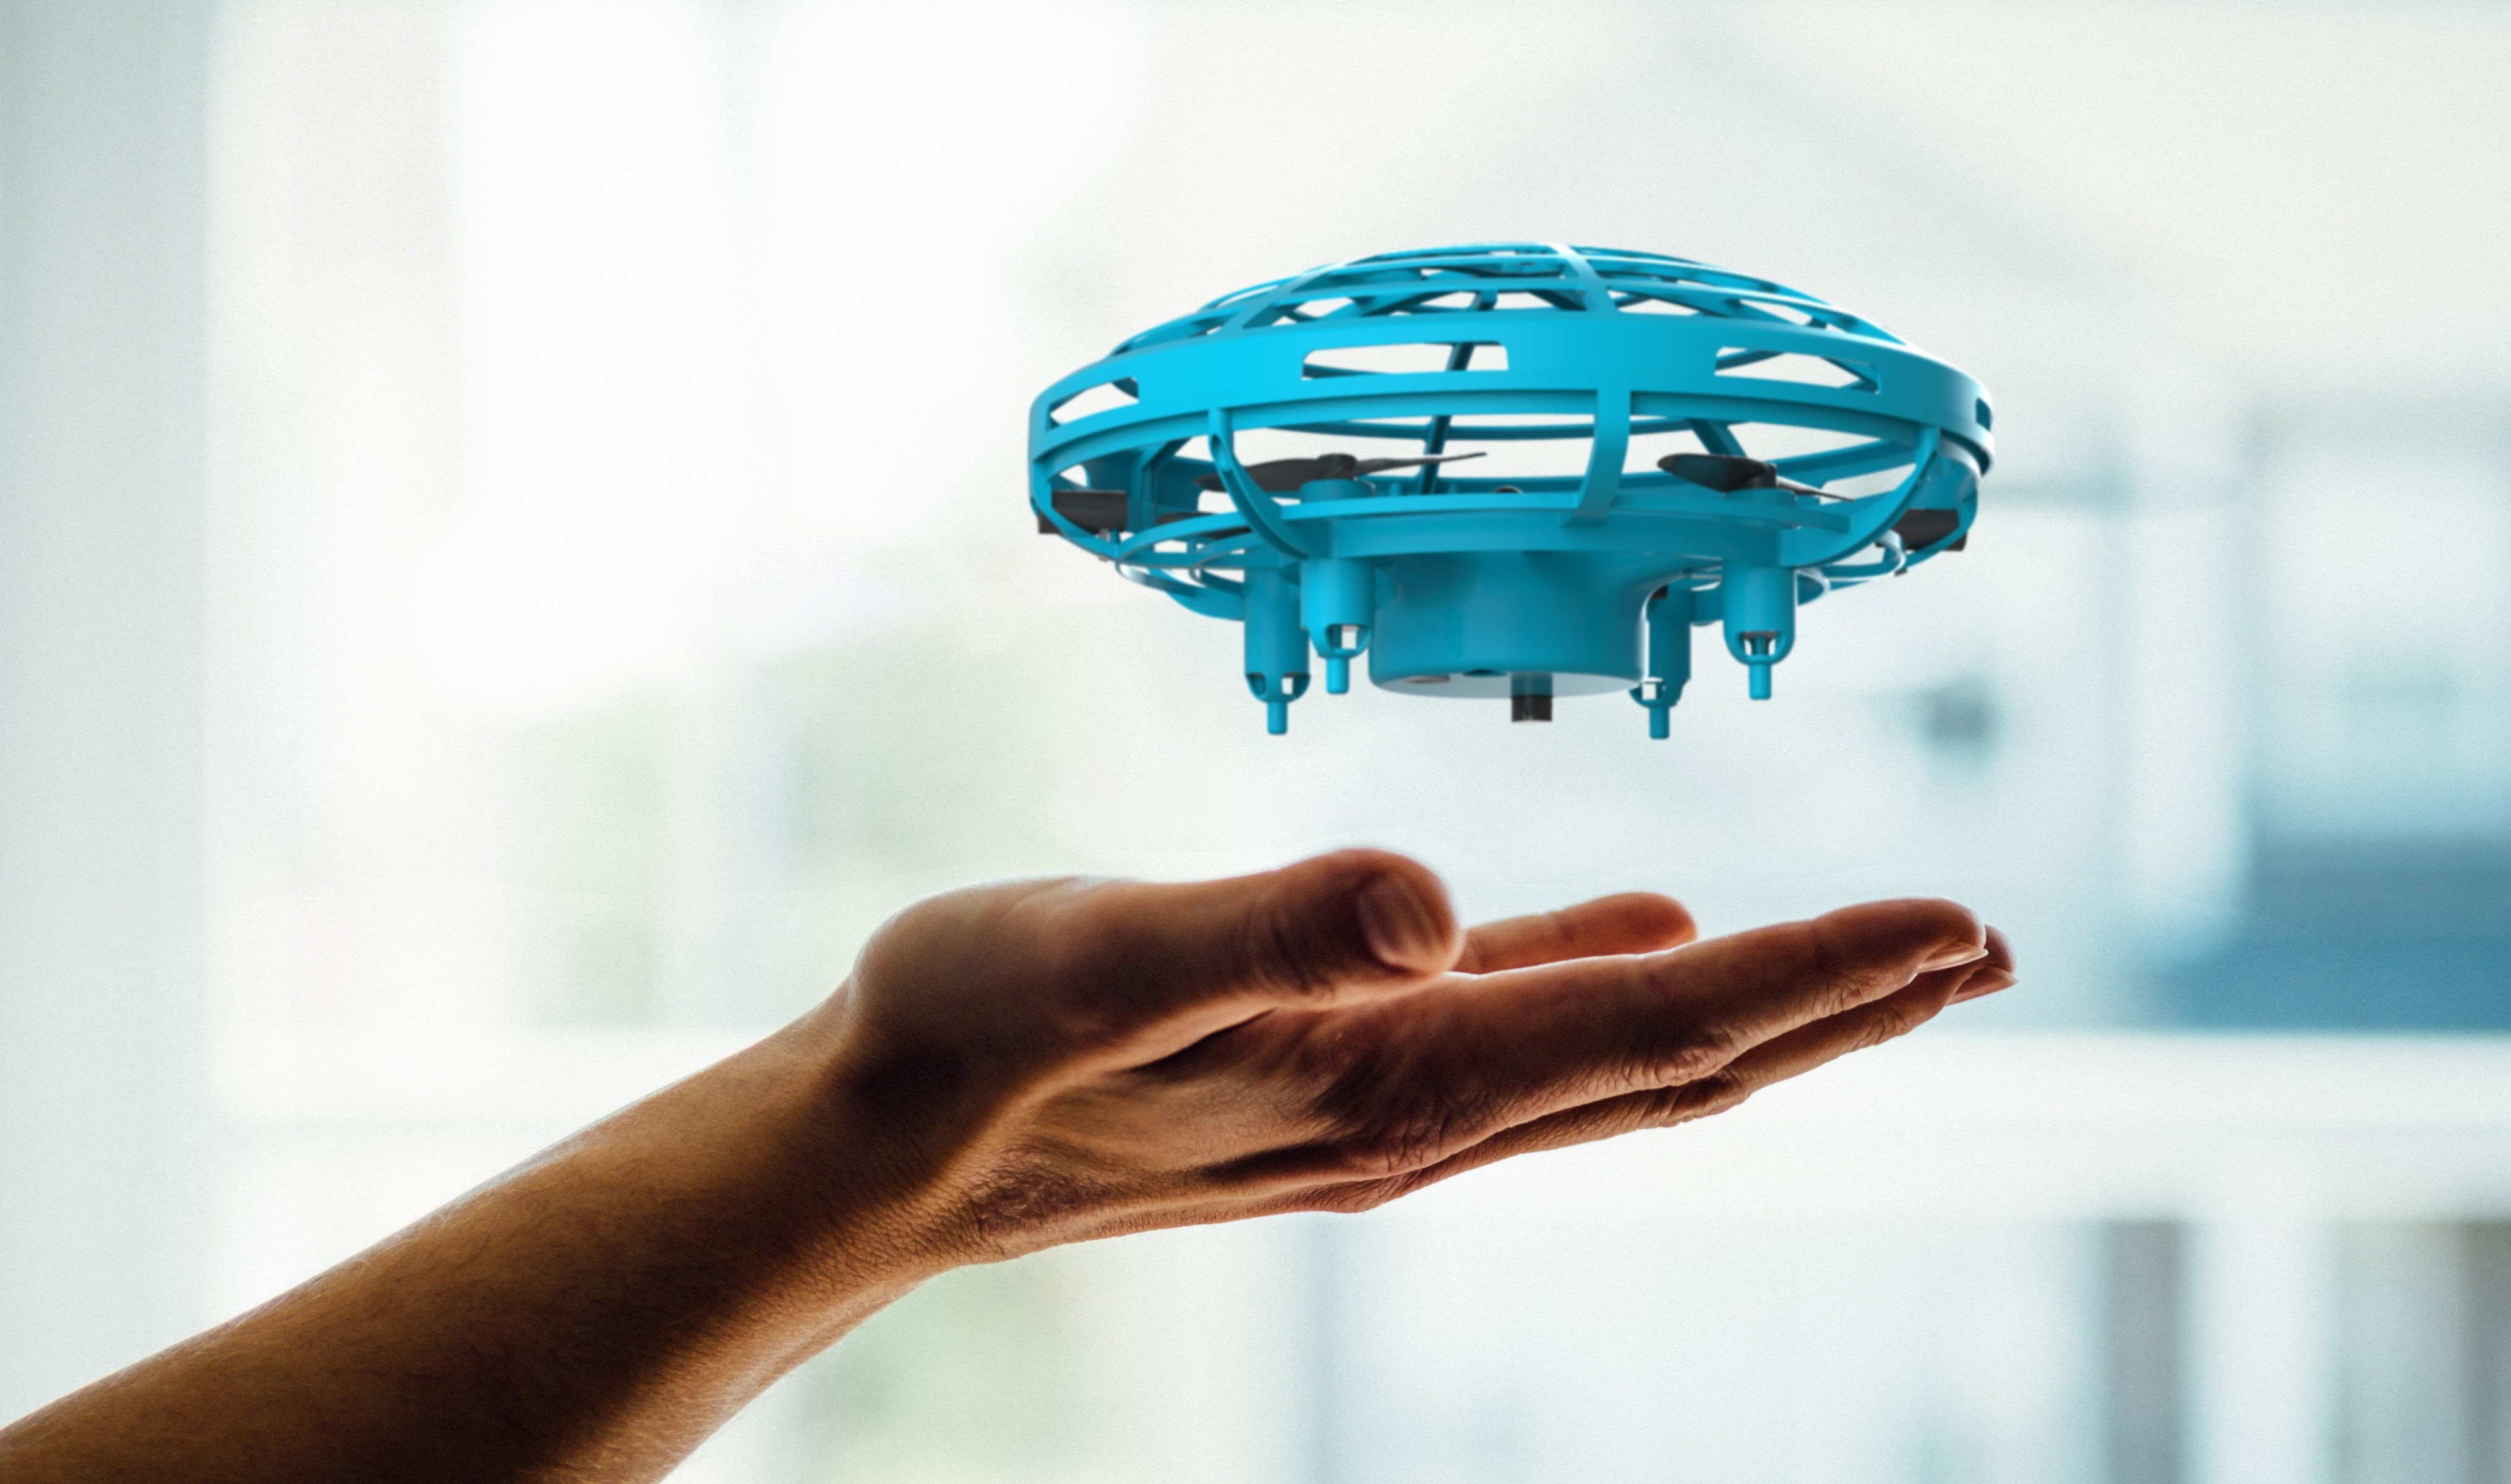 Tech-Gift-Guide-MyFirst-drone-hovering-above-hand.jpg